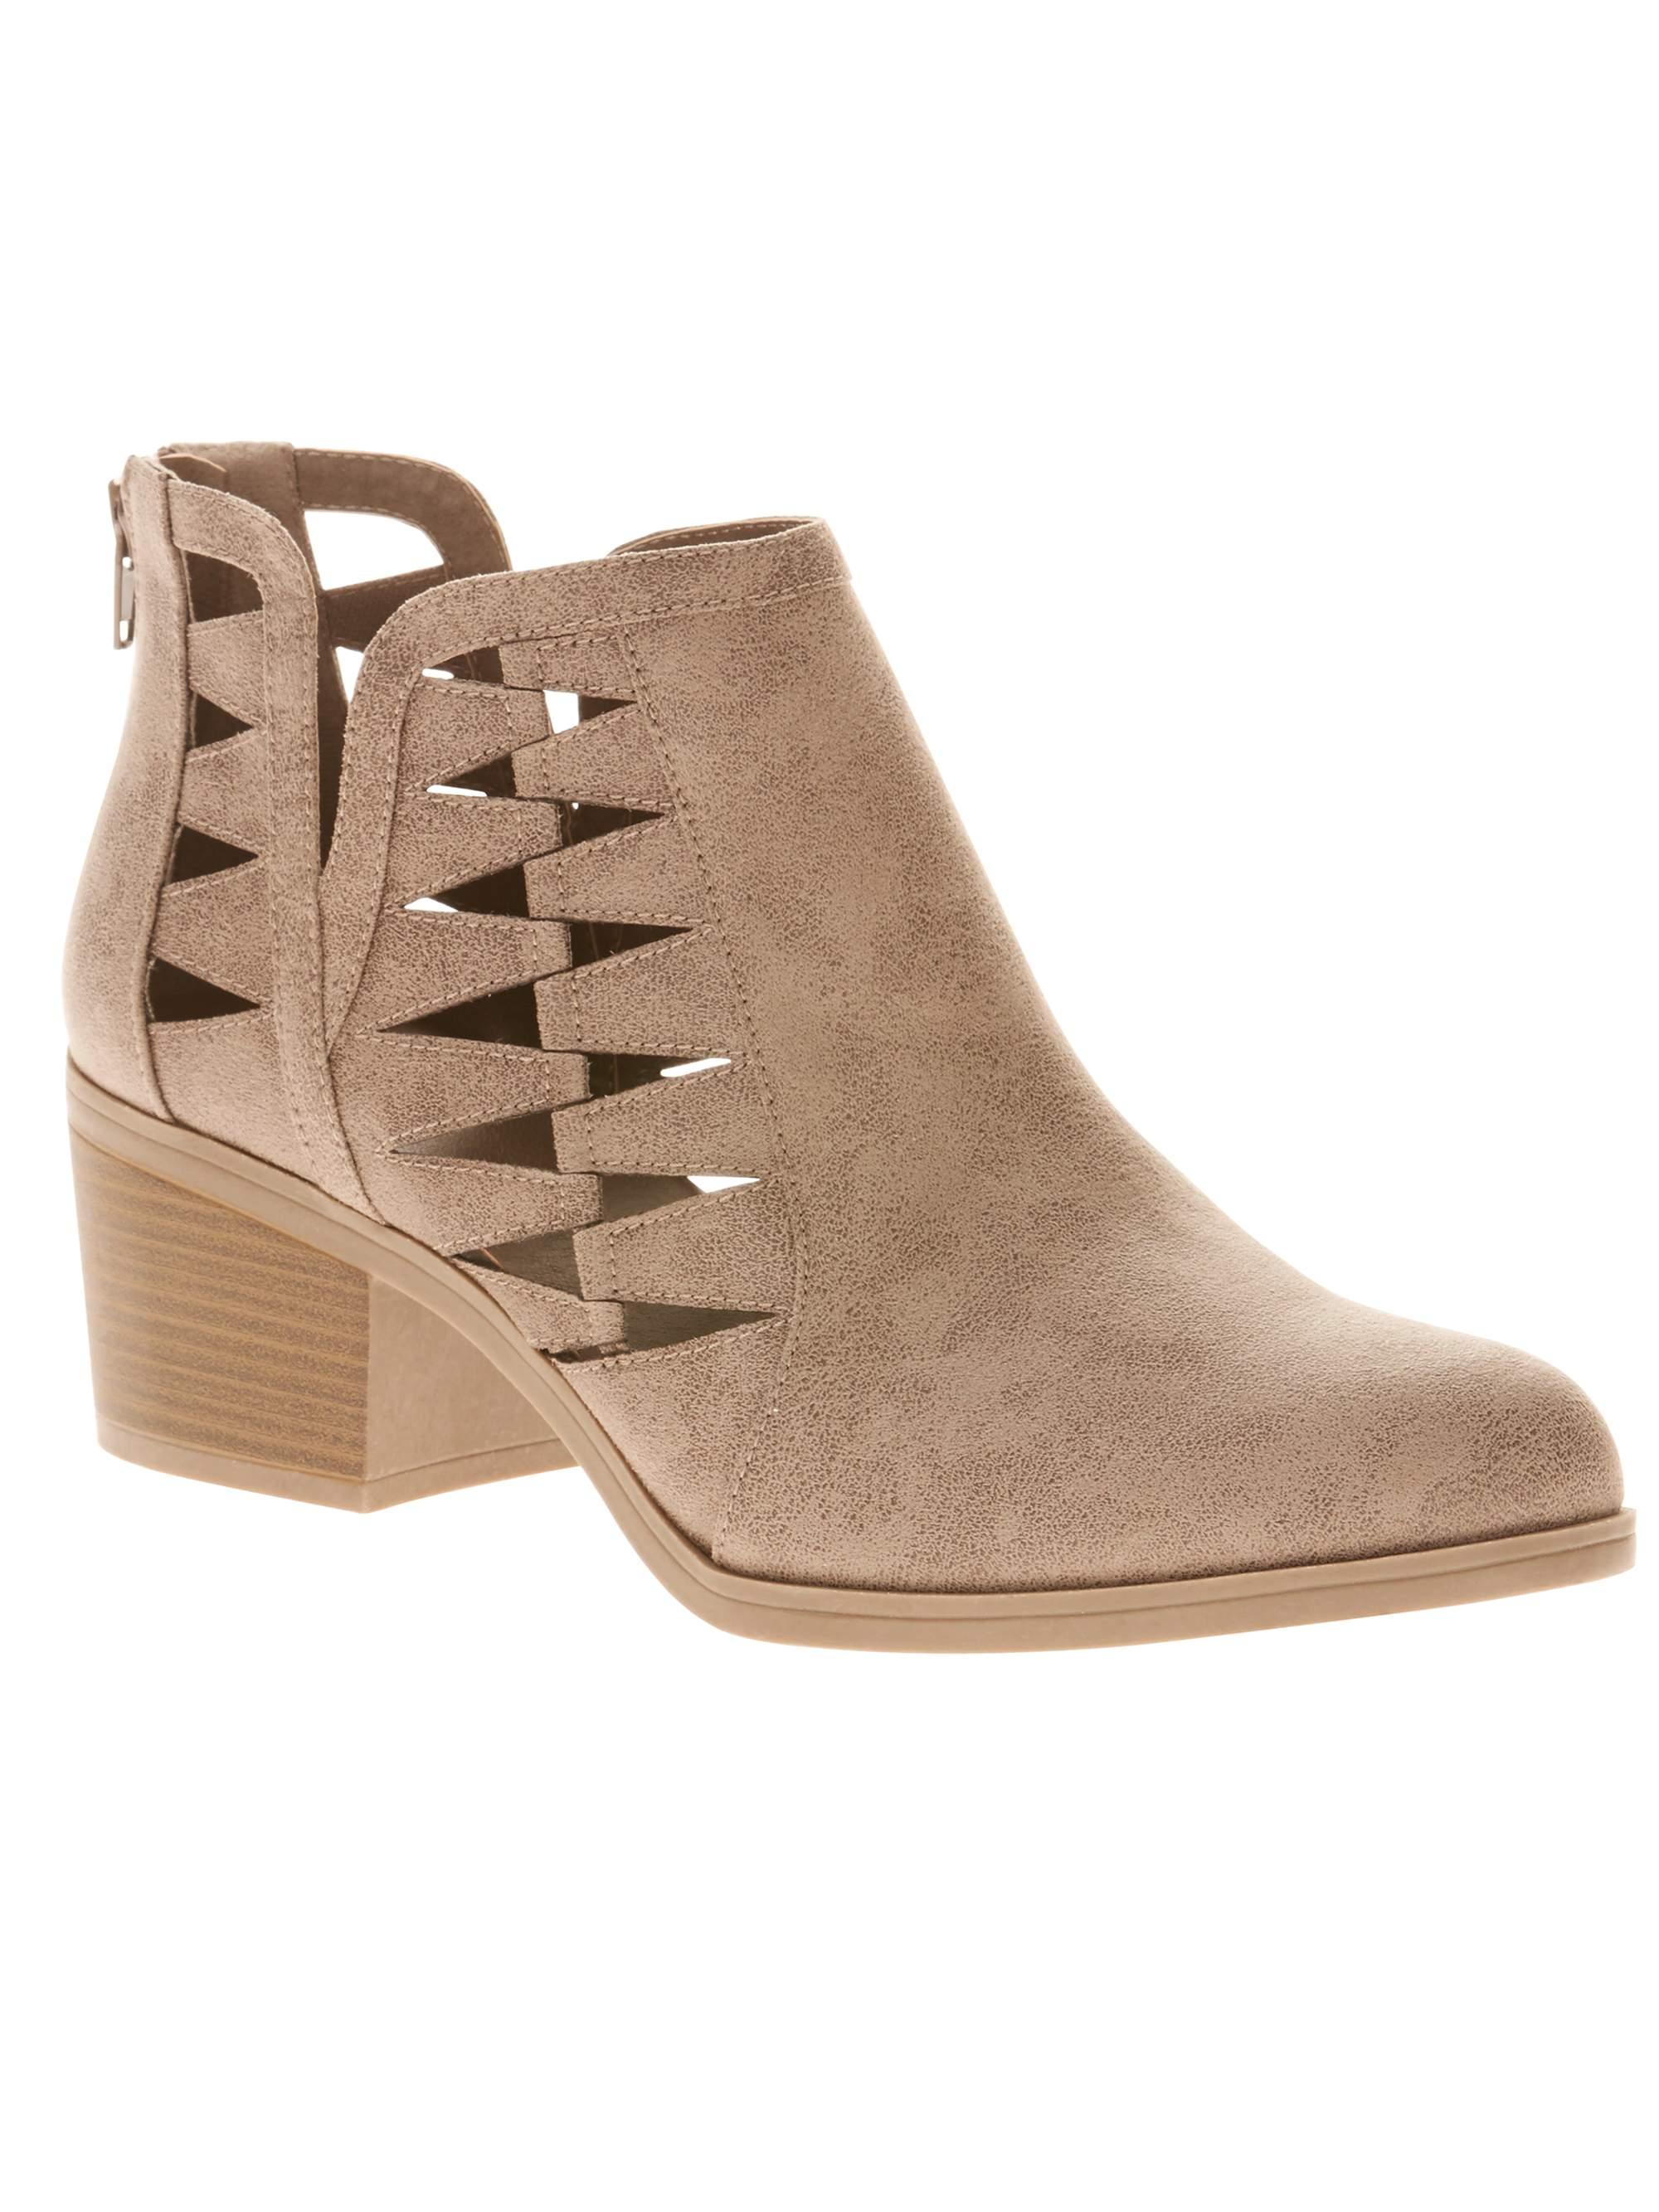 Time and Tru Women's Bootie